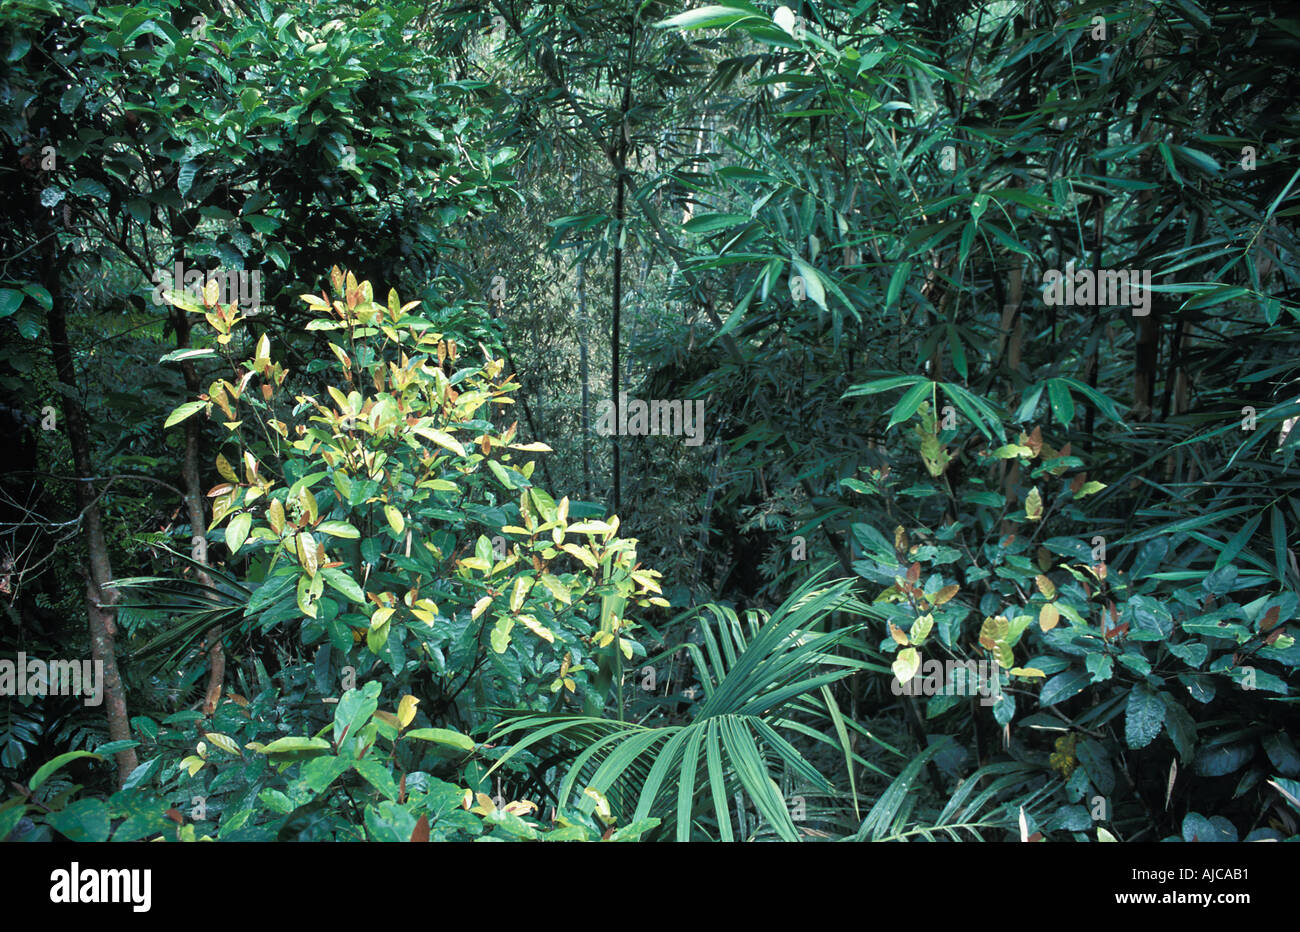 Tropical vegetation on the slopes of Gunung Batukau central Bali - Stock Image